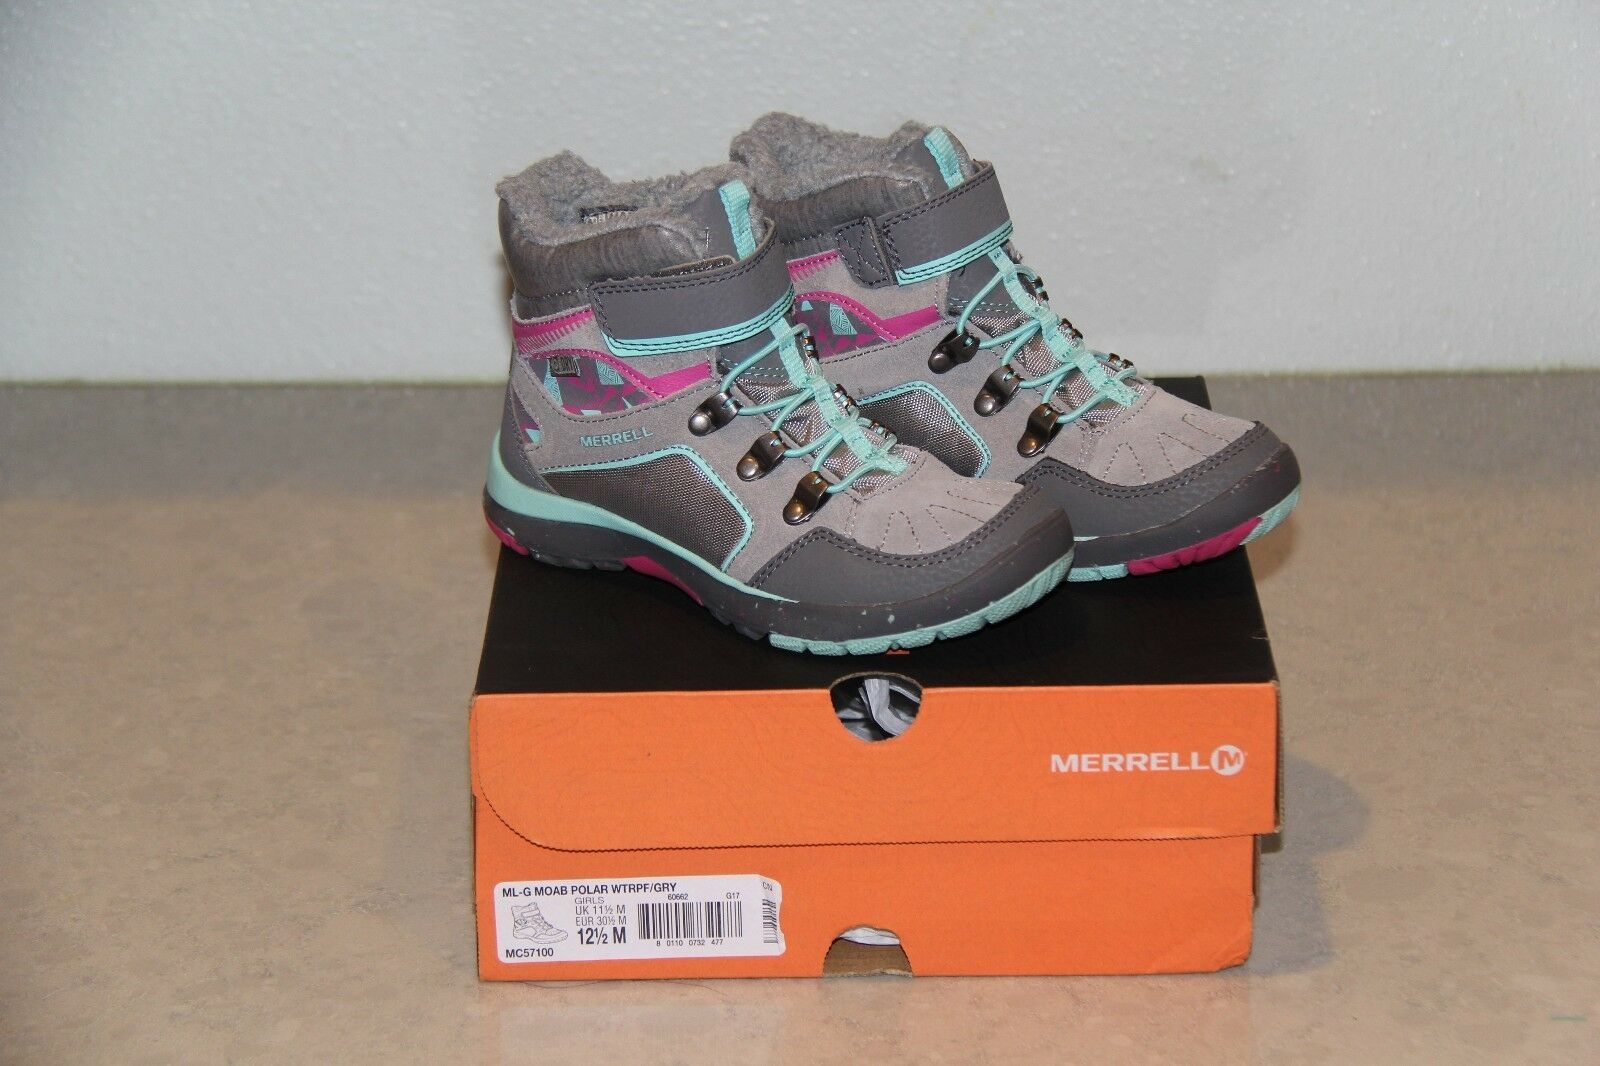 merrell size 12.5 inch